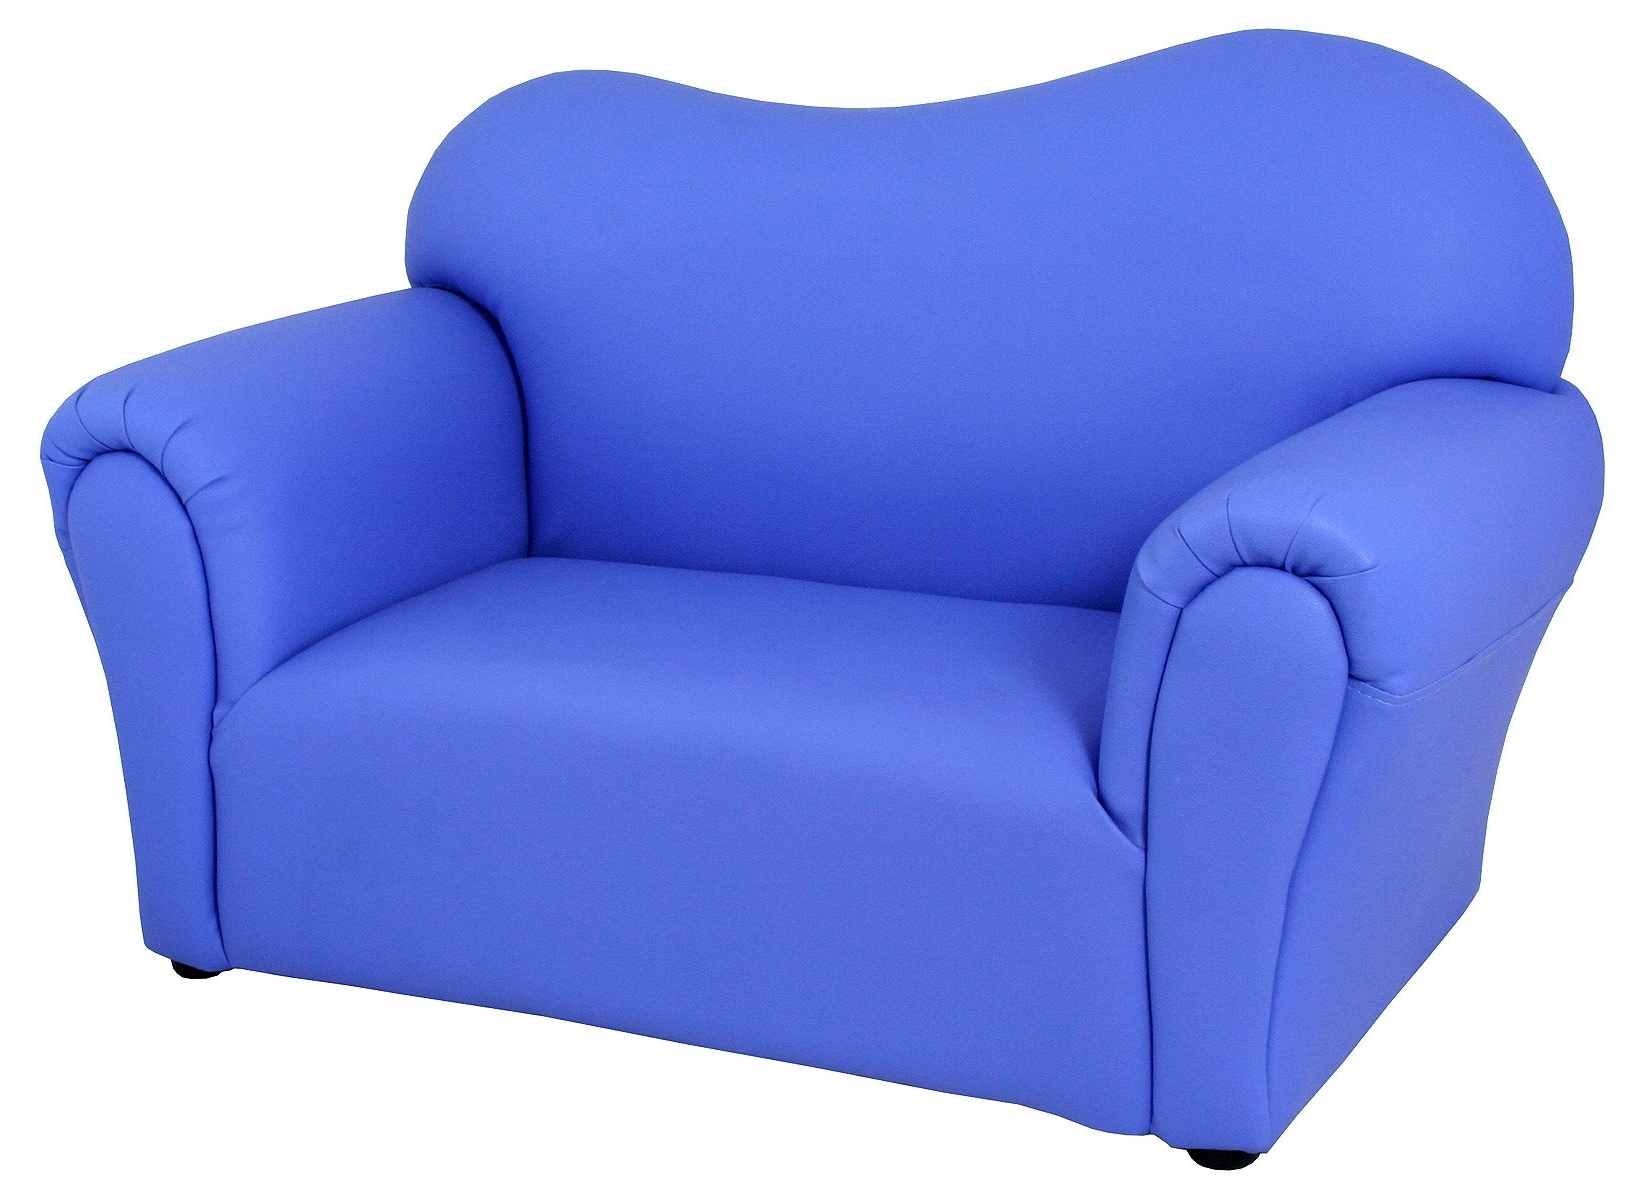 Childrens Sofas Throughout Best And Newest Childrens Blue Mini Sofa – Be Fabulous! (View 12 of 15)